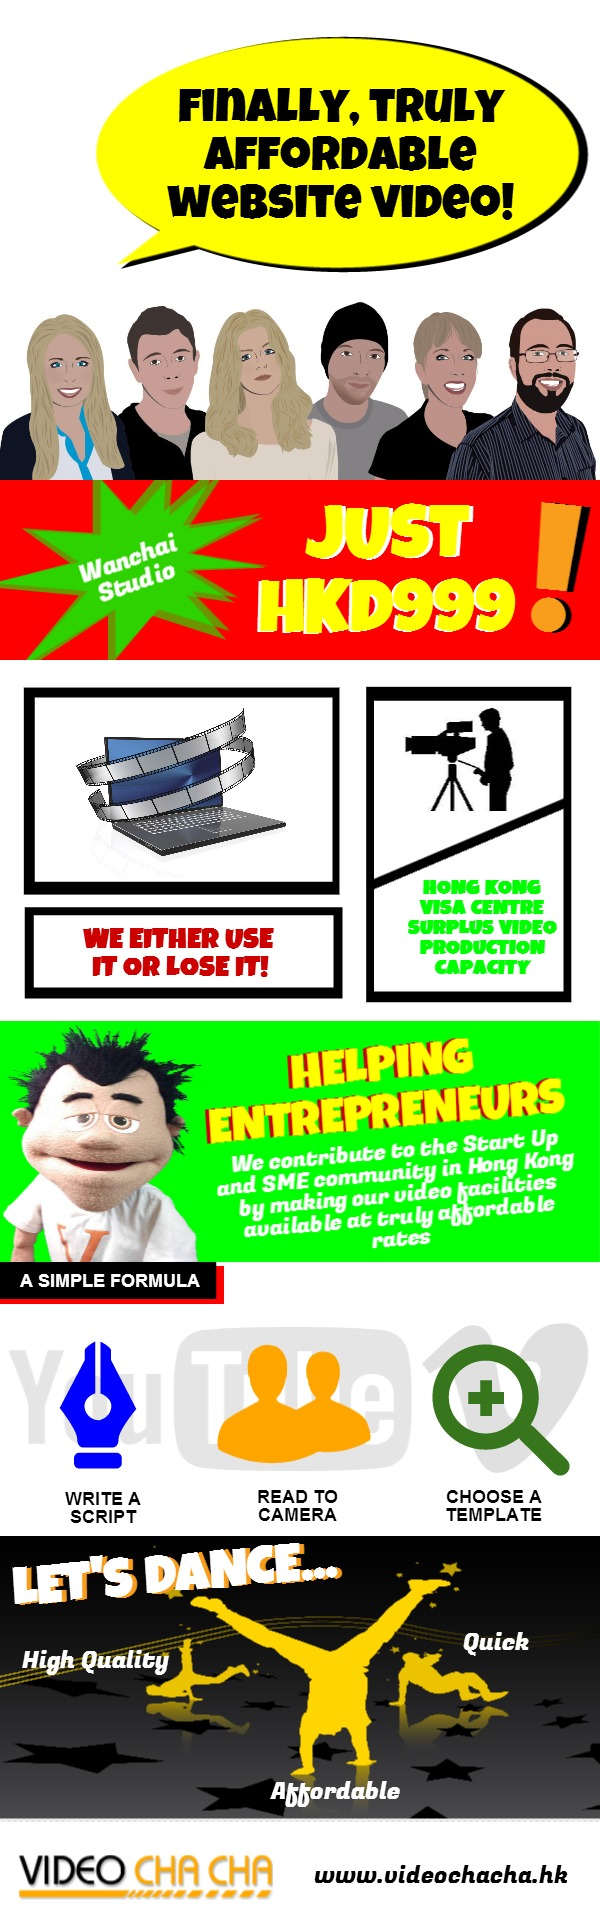 VCC Helping Entreprenurs Access Affordable Website Video